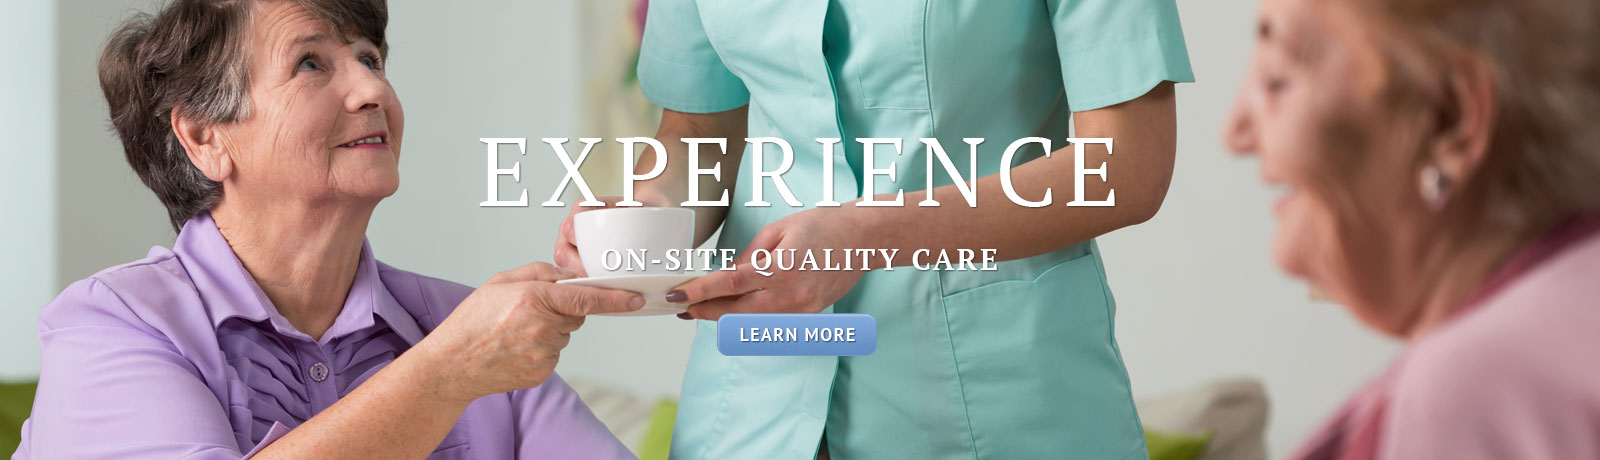 On-site quality care